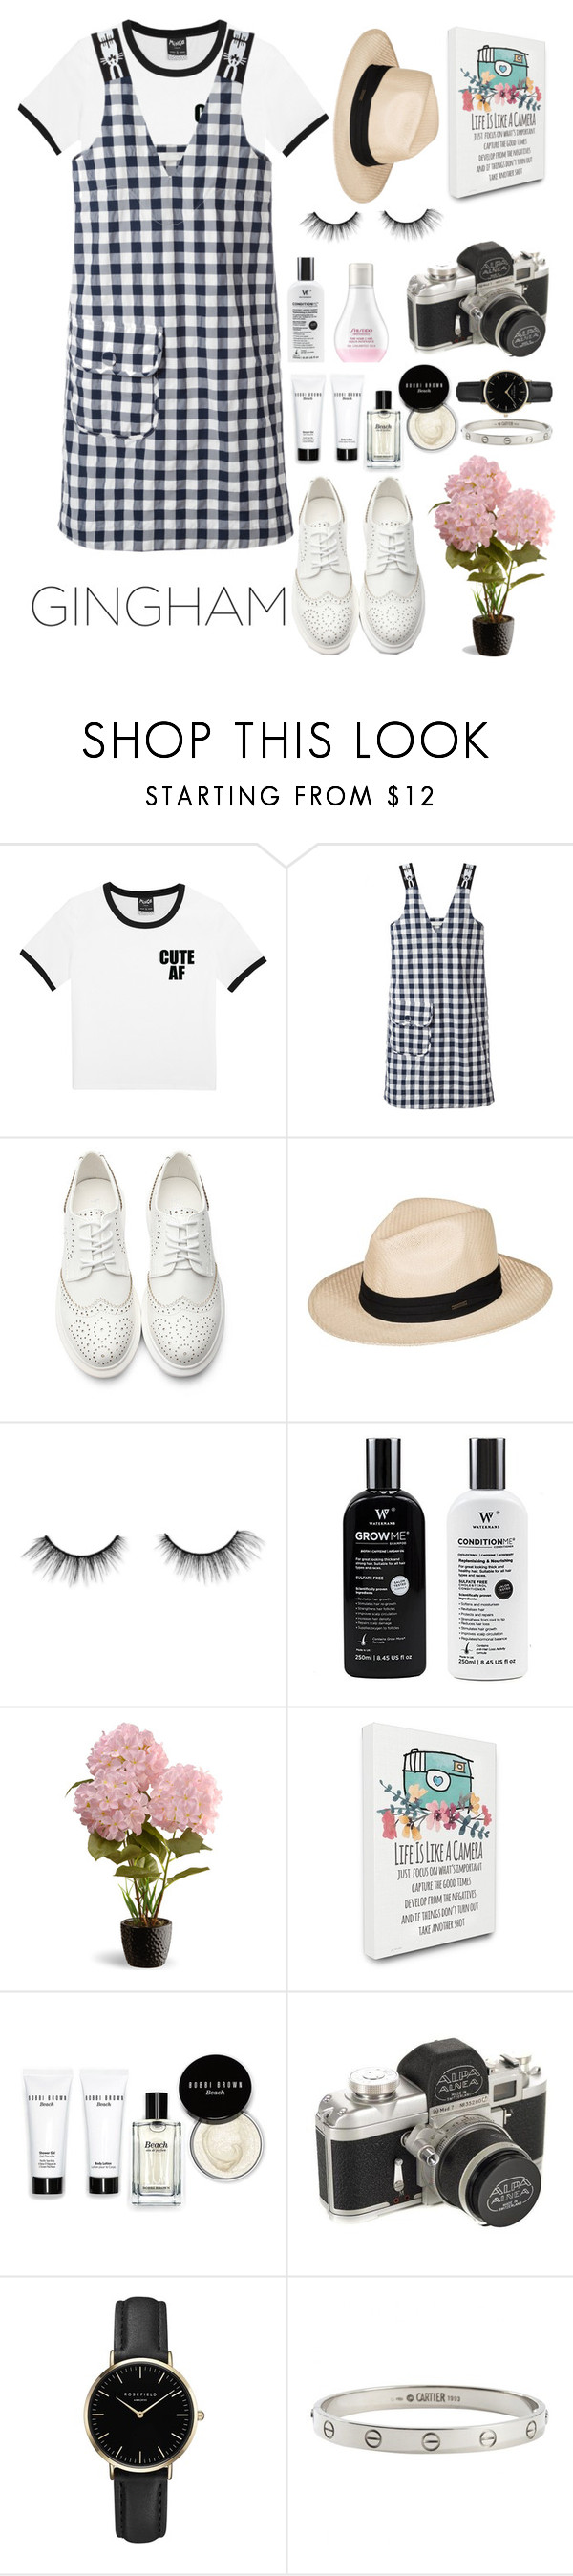 """""""GINGHAM LOOKS"""" by mariasanchristy ❤ liked on Polyvore featuring Peter Jensen, Roxy, tarte, Shiseido, National Tree Company, Stupell, Bobbi Brown Cosmetics, ROSEFIELD and Cartier"""